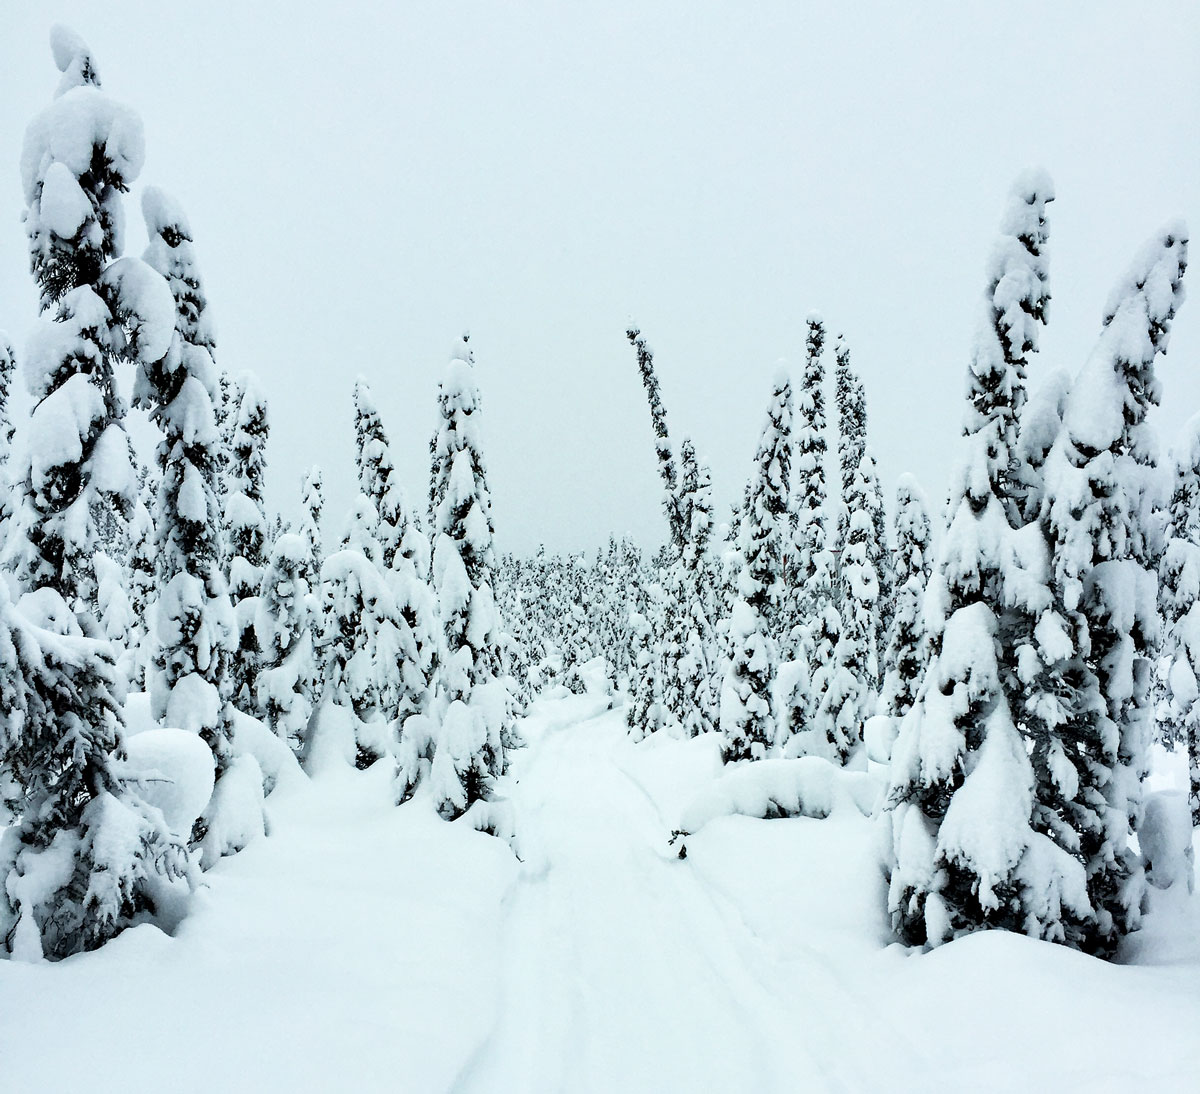 Snowy-Trees-In-Fairbanks-Alaska-By-Bumble-and-Bustle